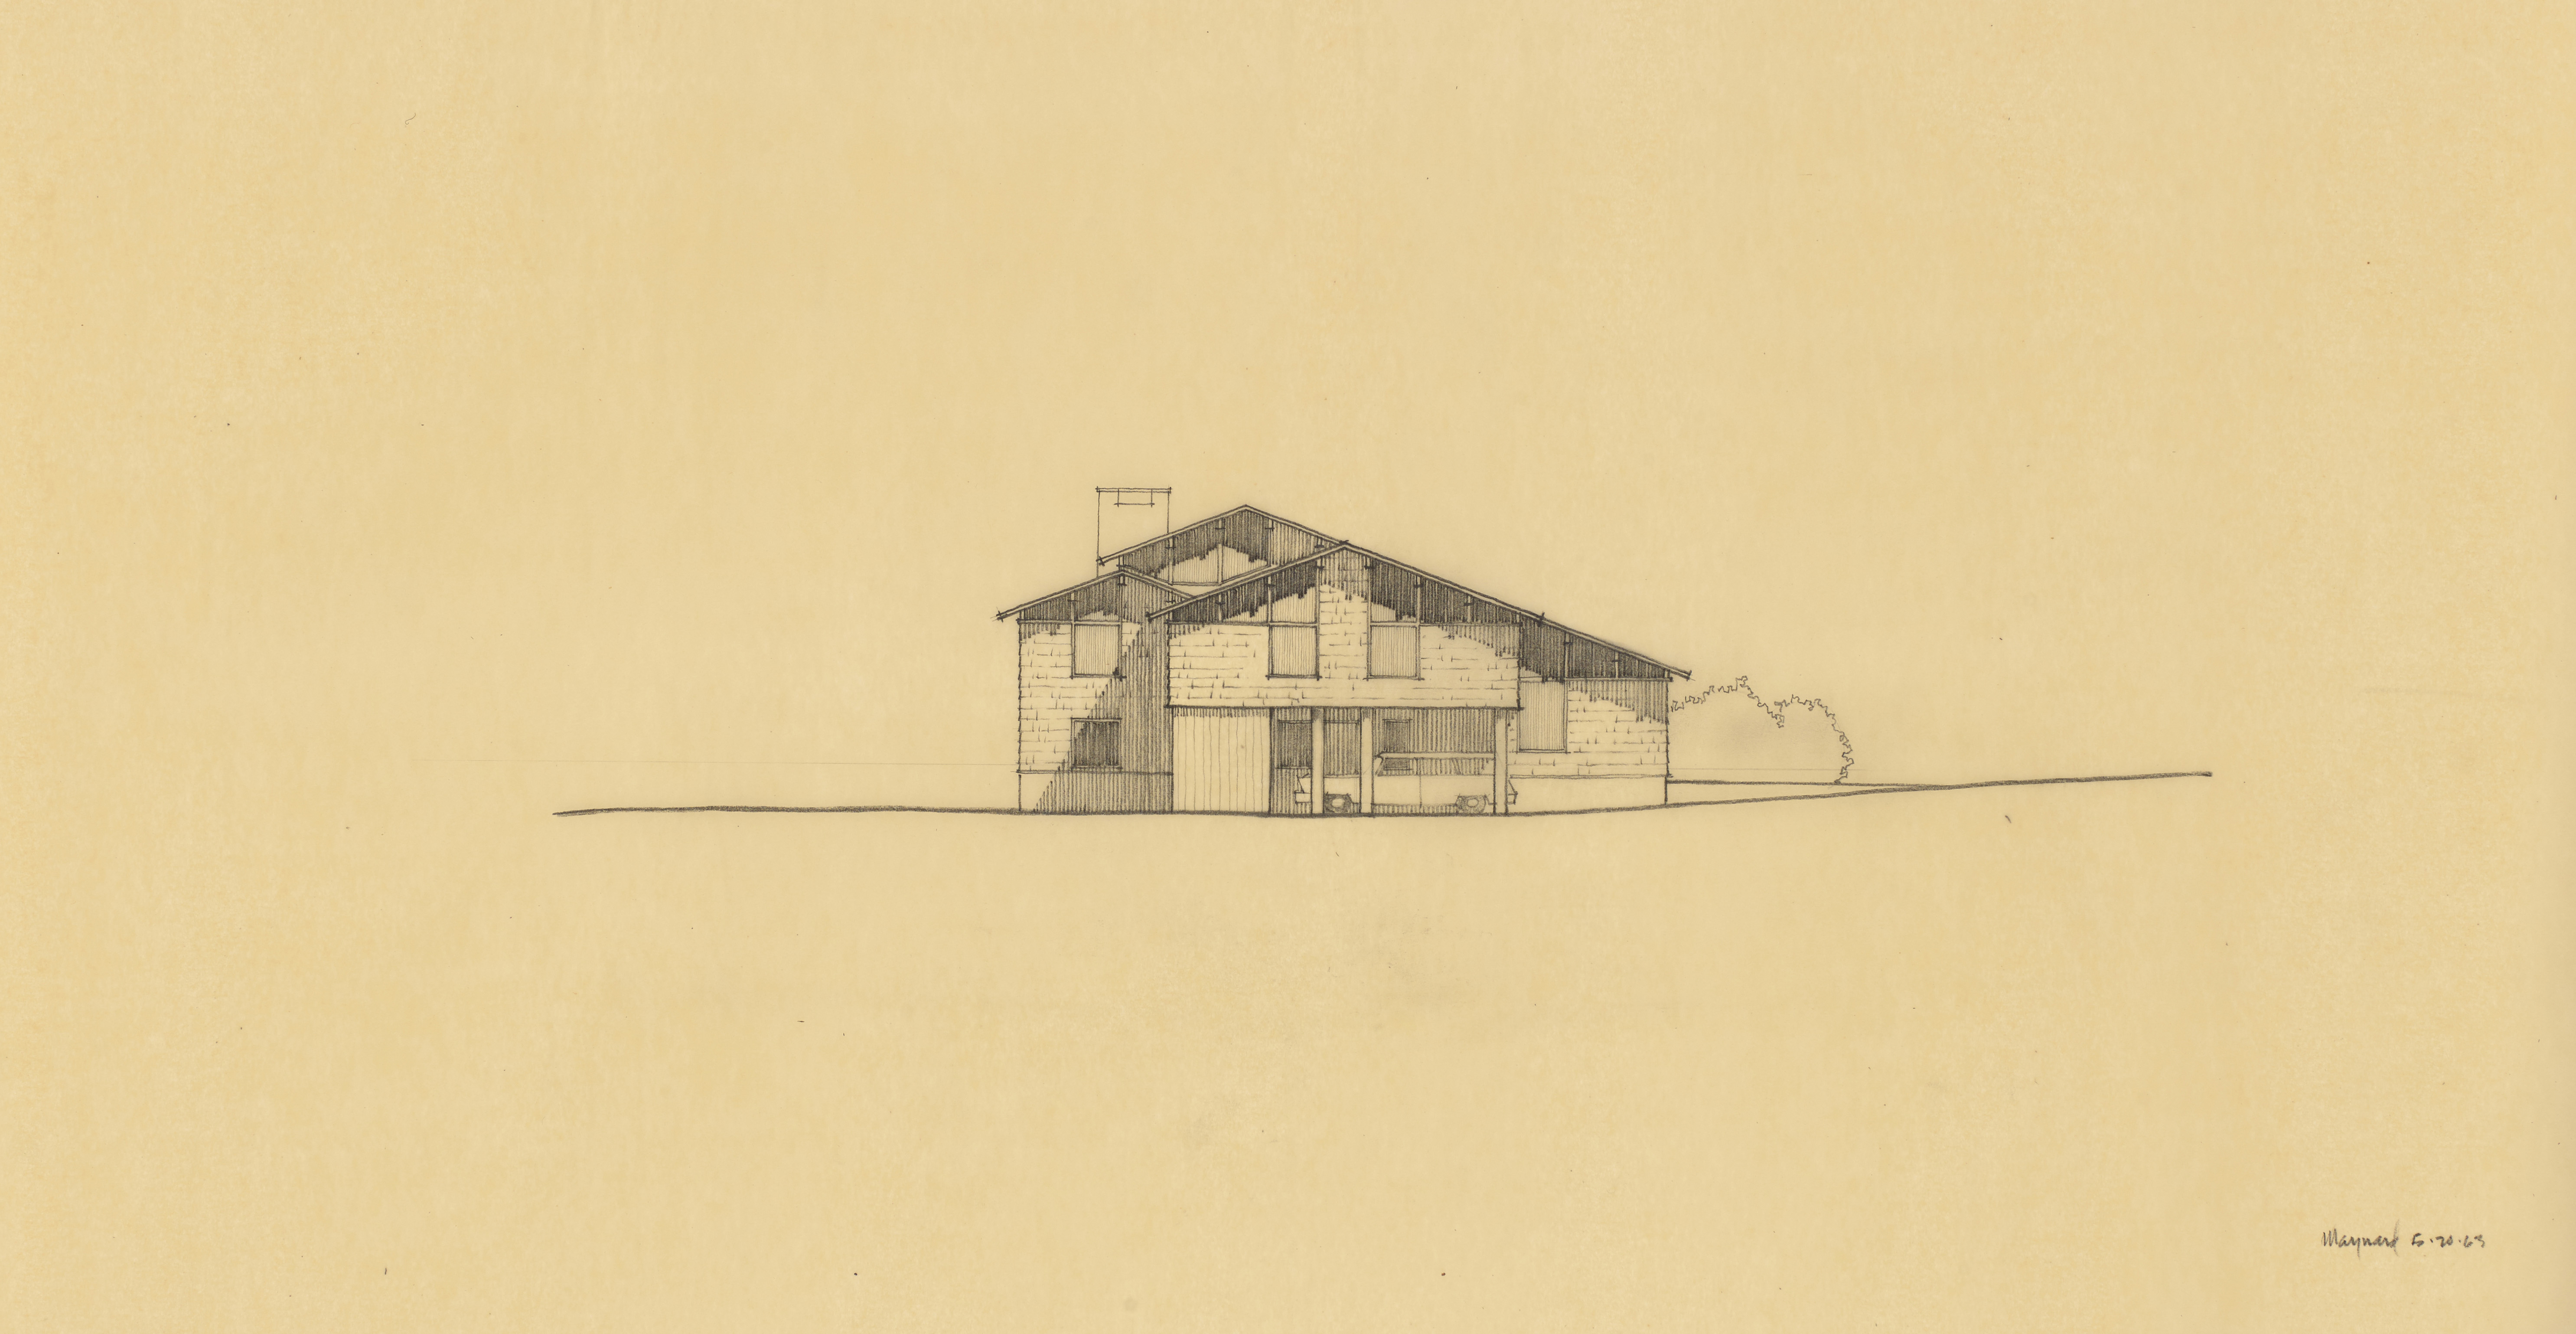 EPM Untitled East Elevation, 1963, graphite on tracing paper, 14 x 24 inches